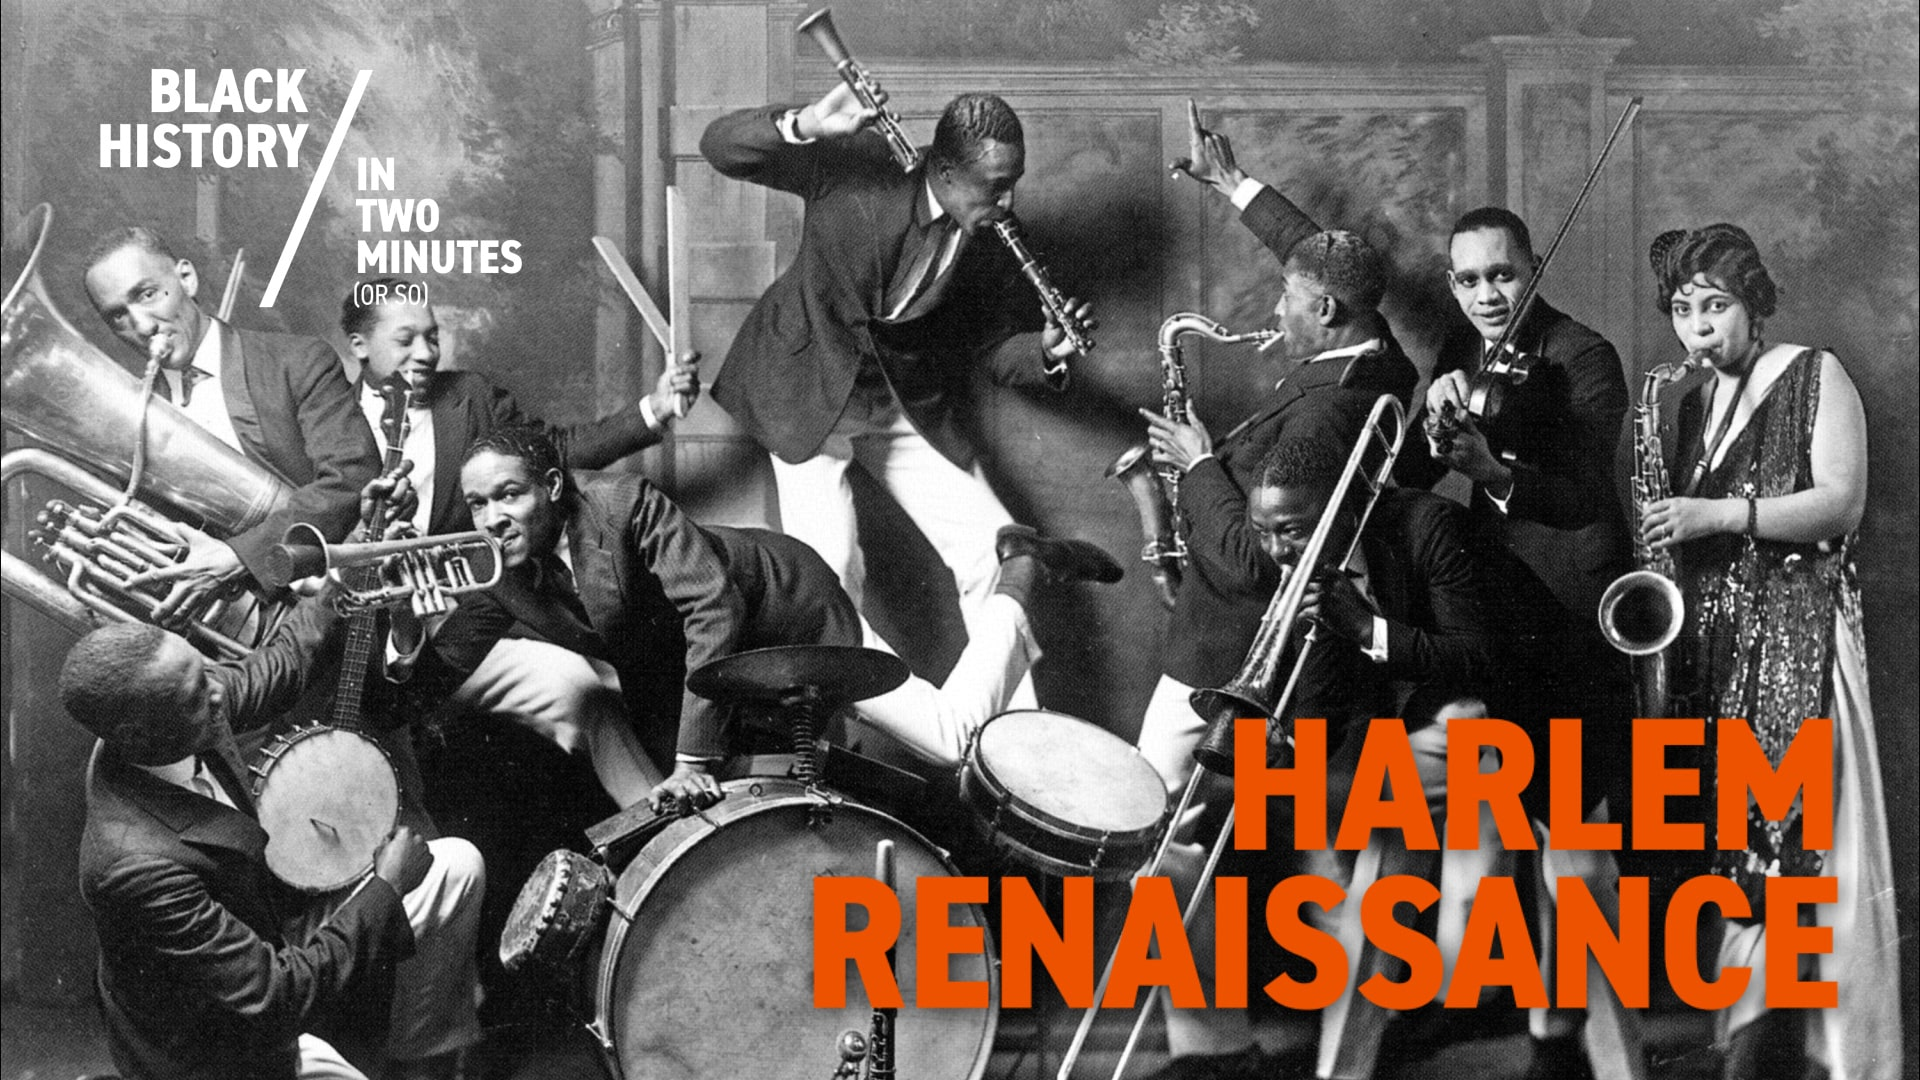 The Harlem Renaissance | Black History in Two Minutes